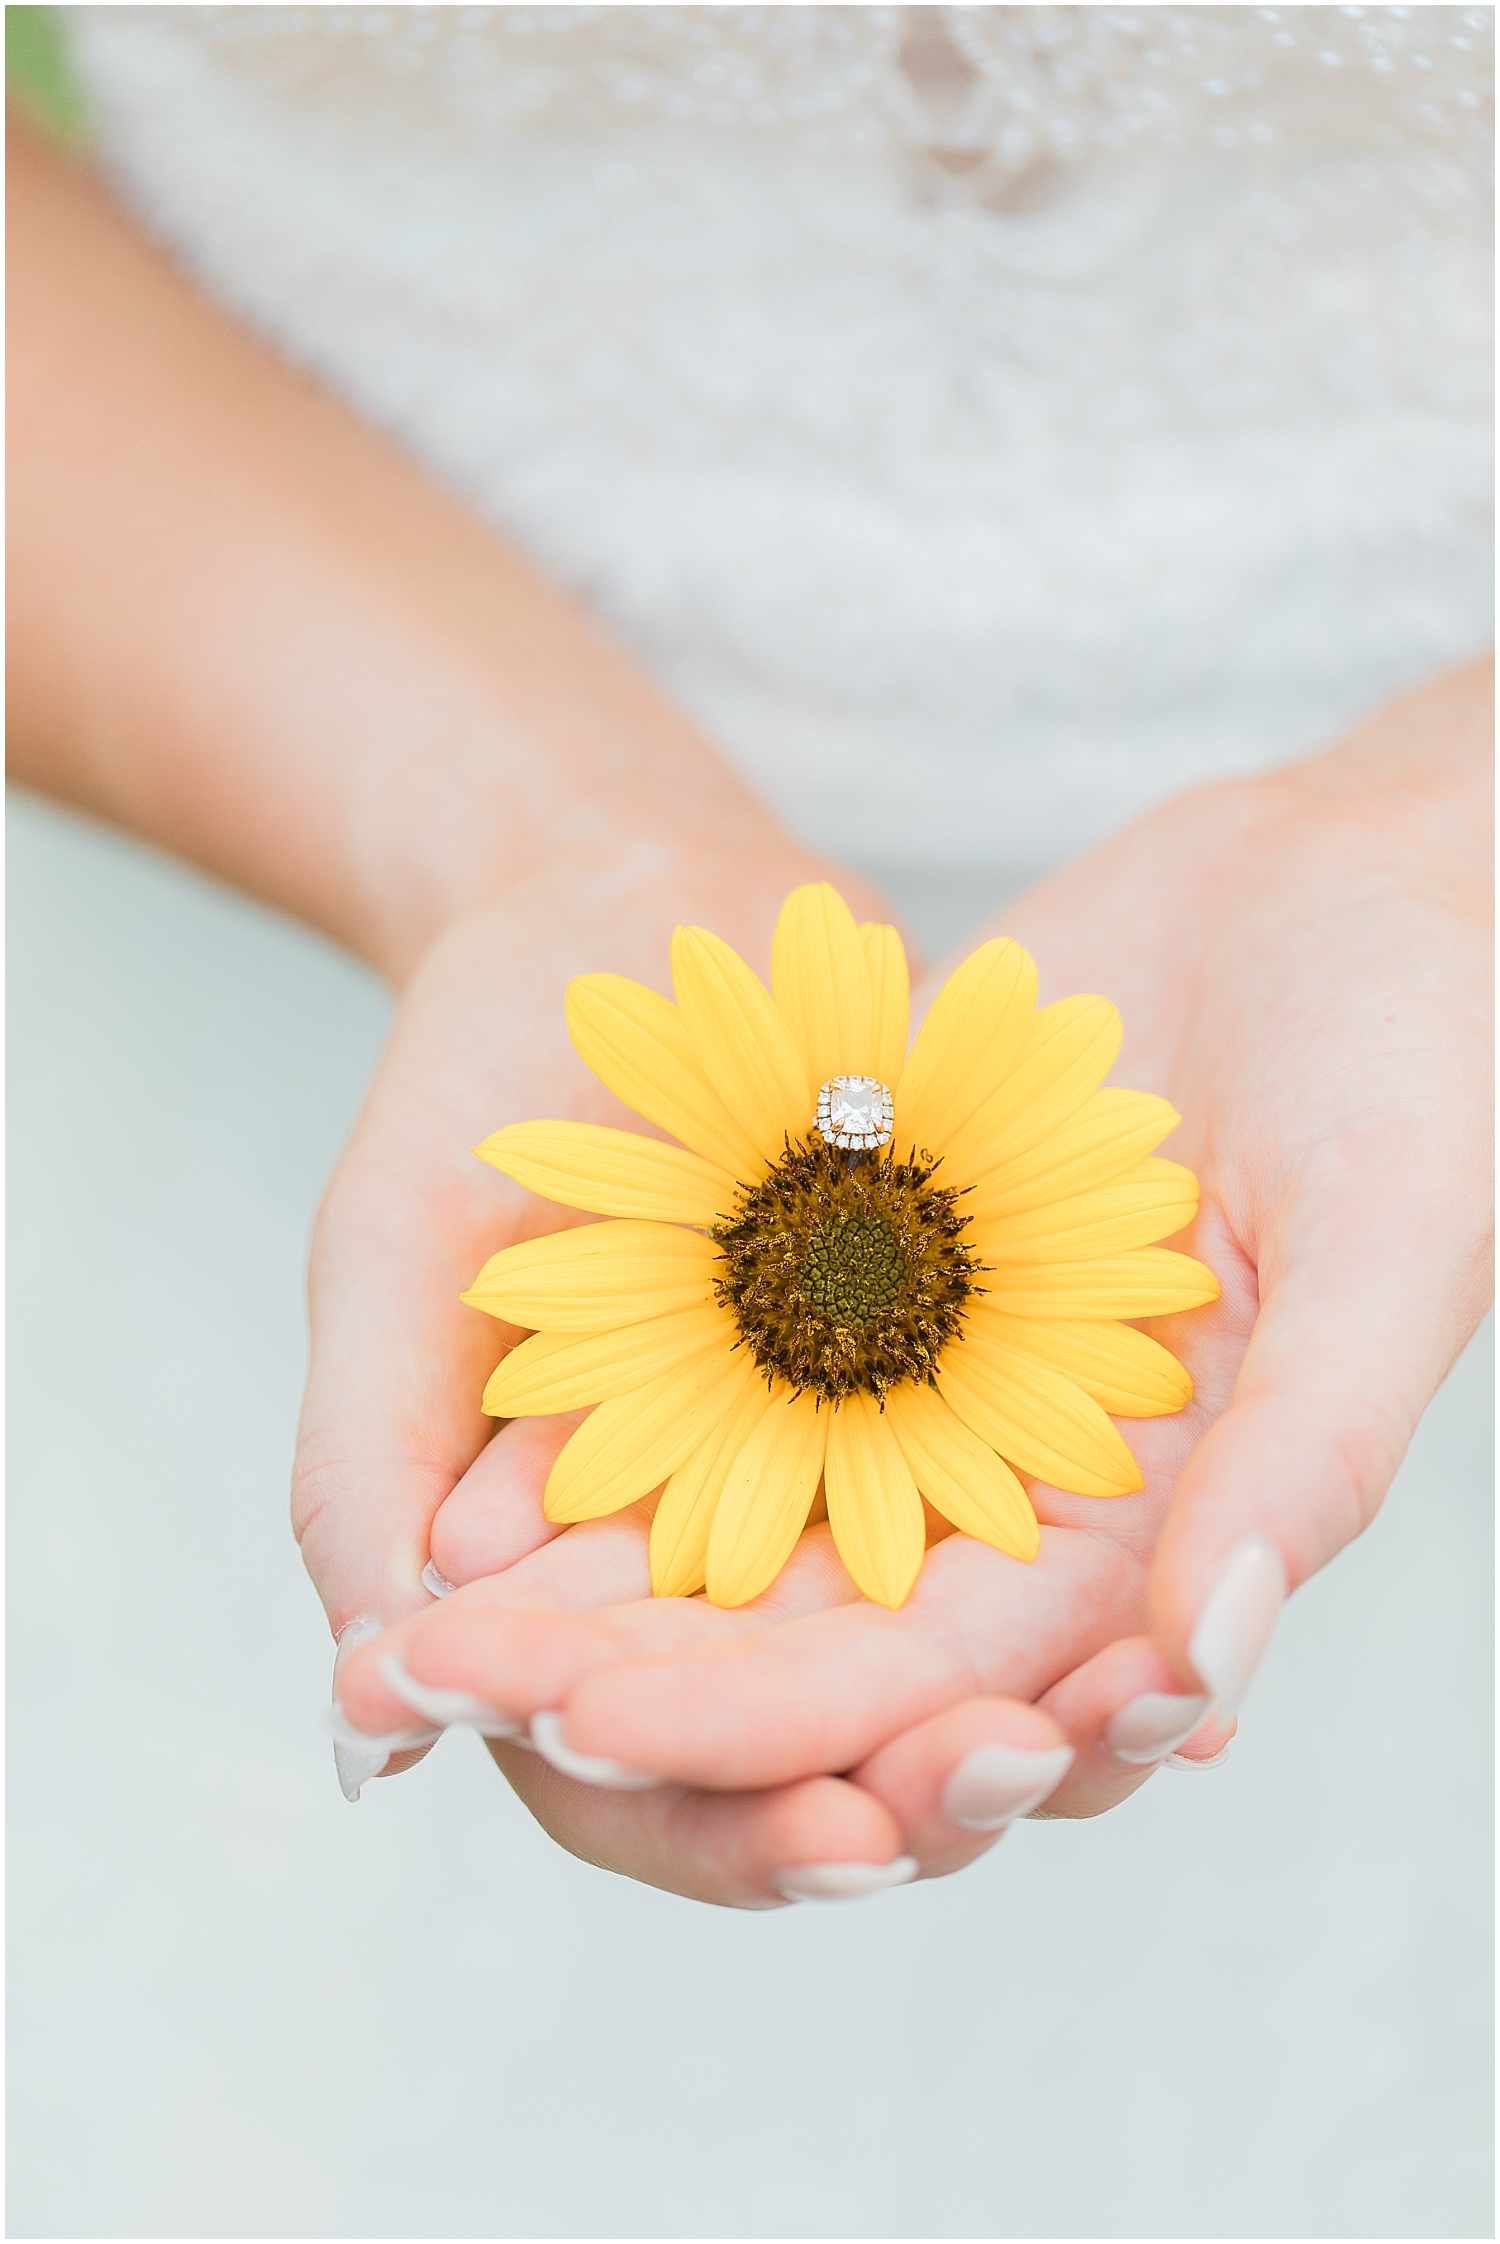 Sunflower and wedding ring